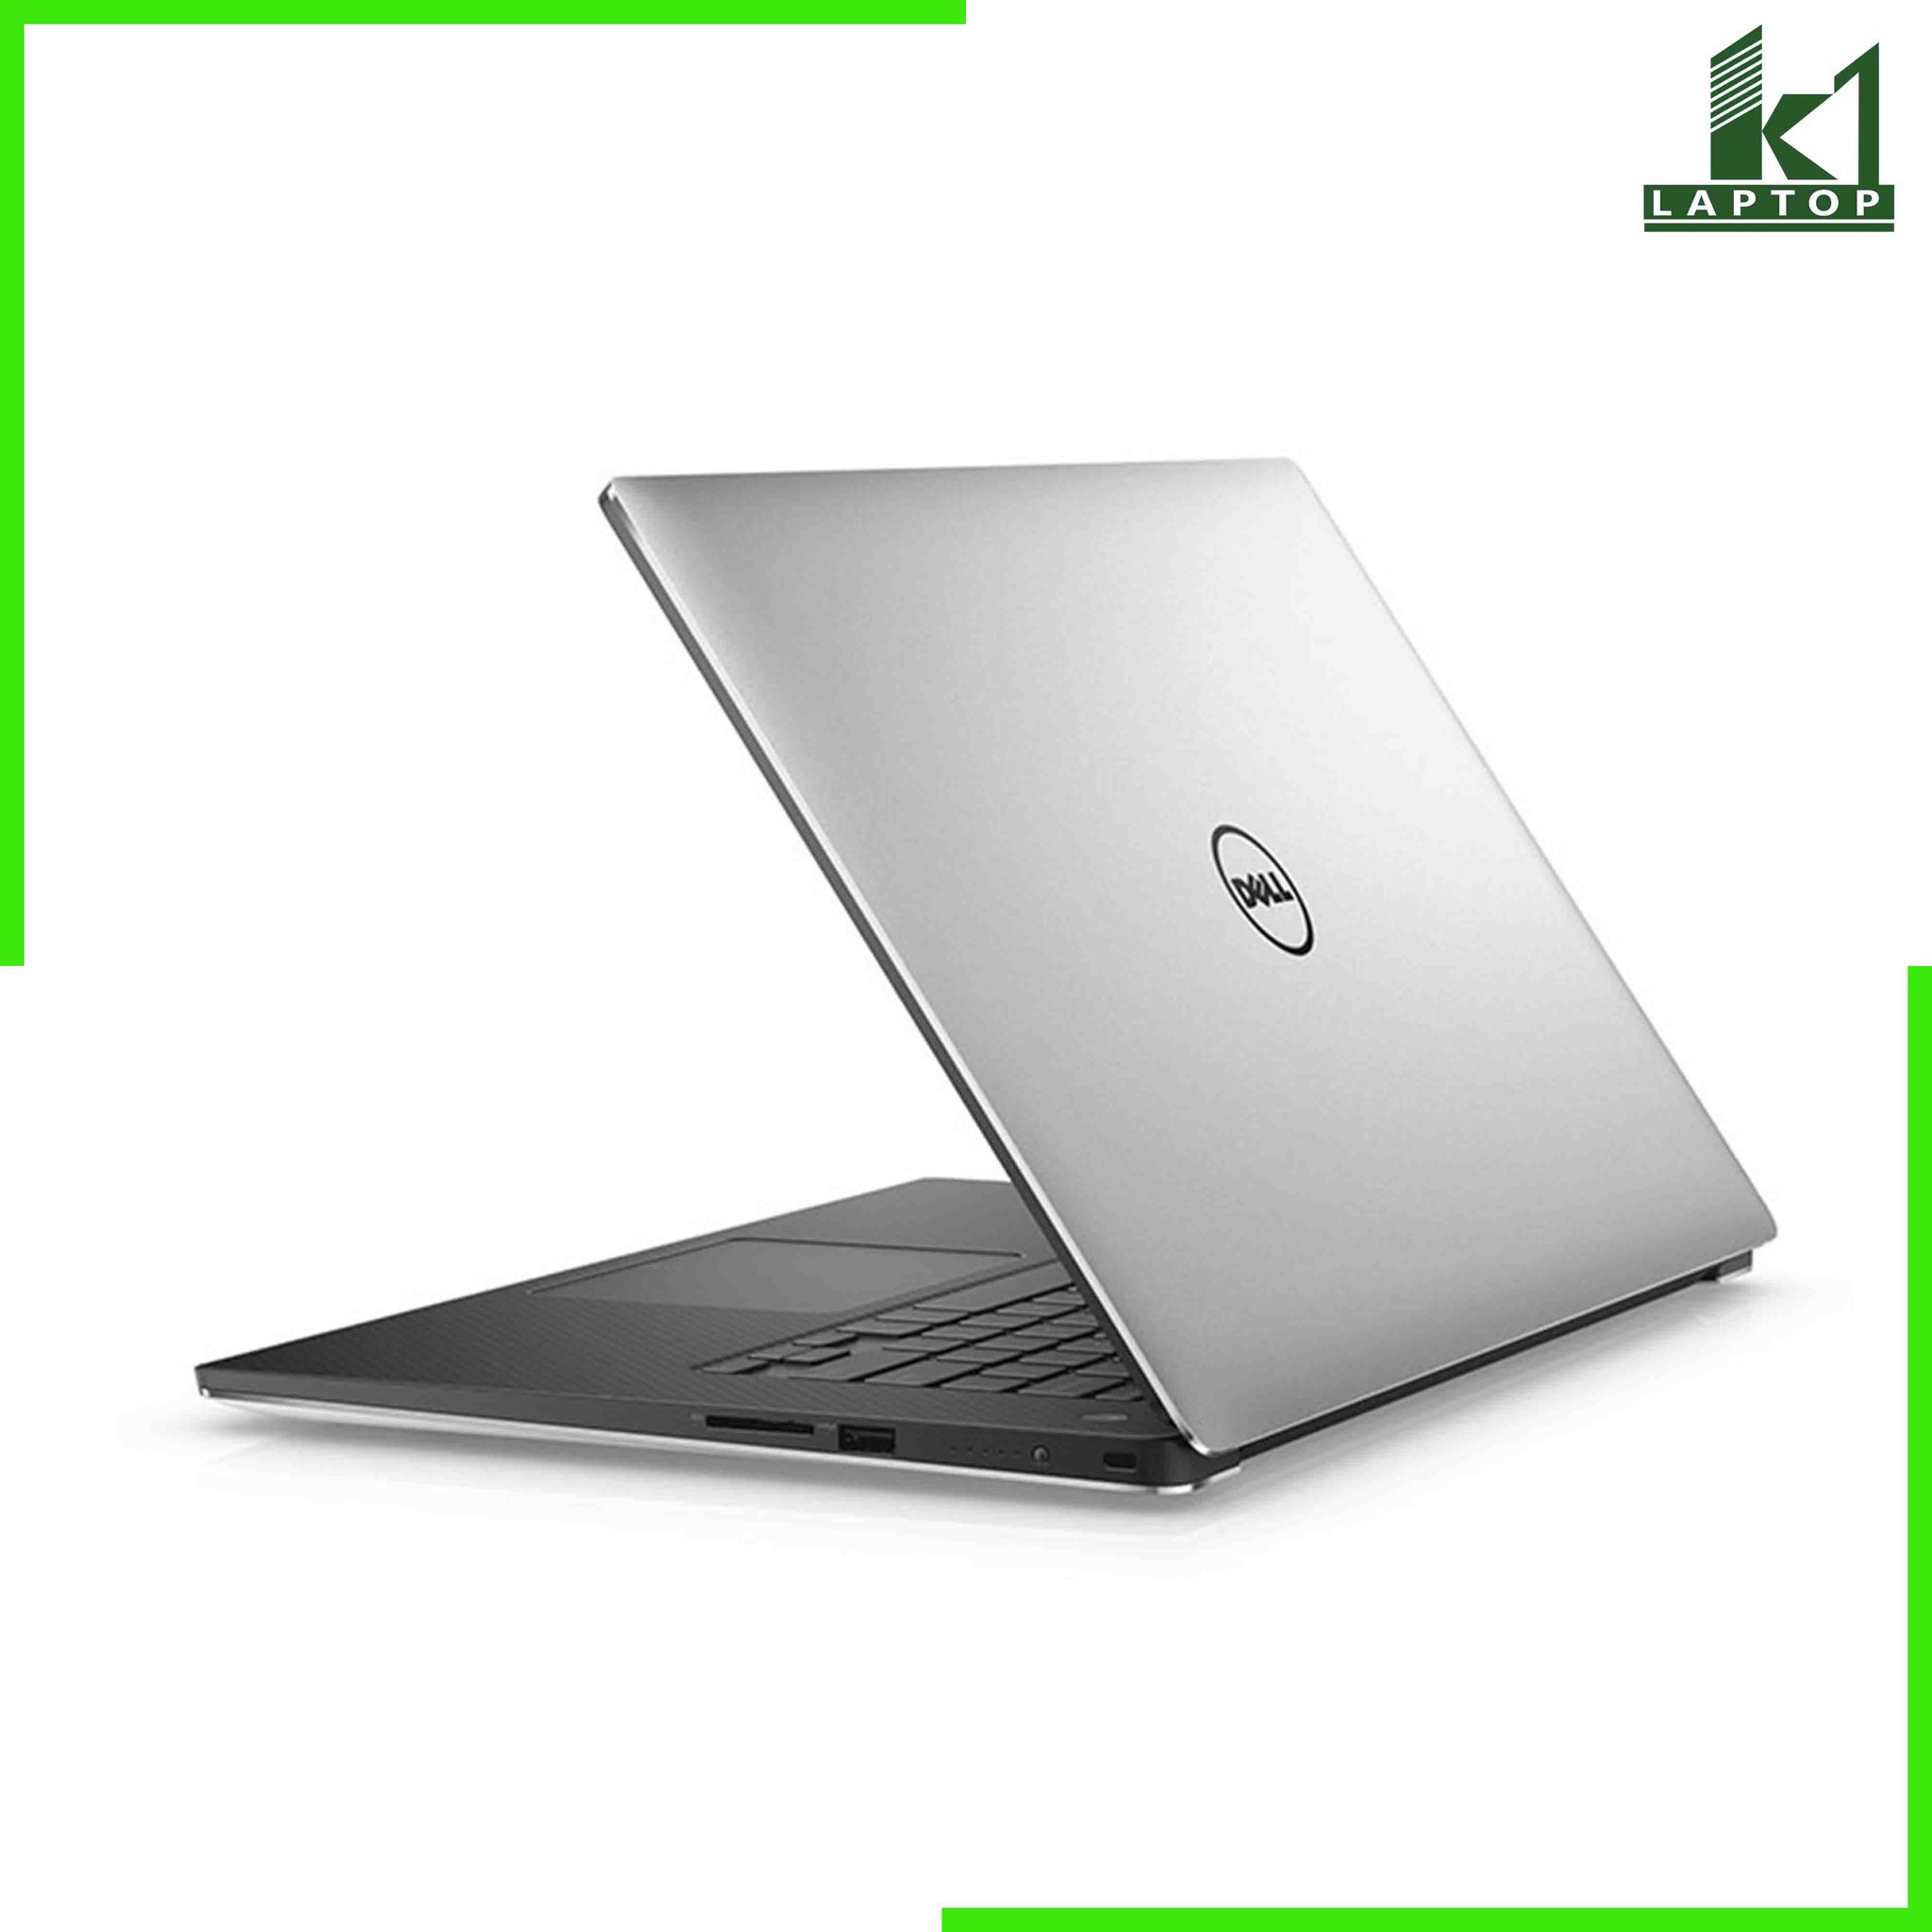 Laptop Workstation Dell Precision M5520 Intel Core i7 / Xeon E3